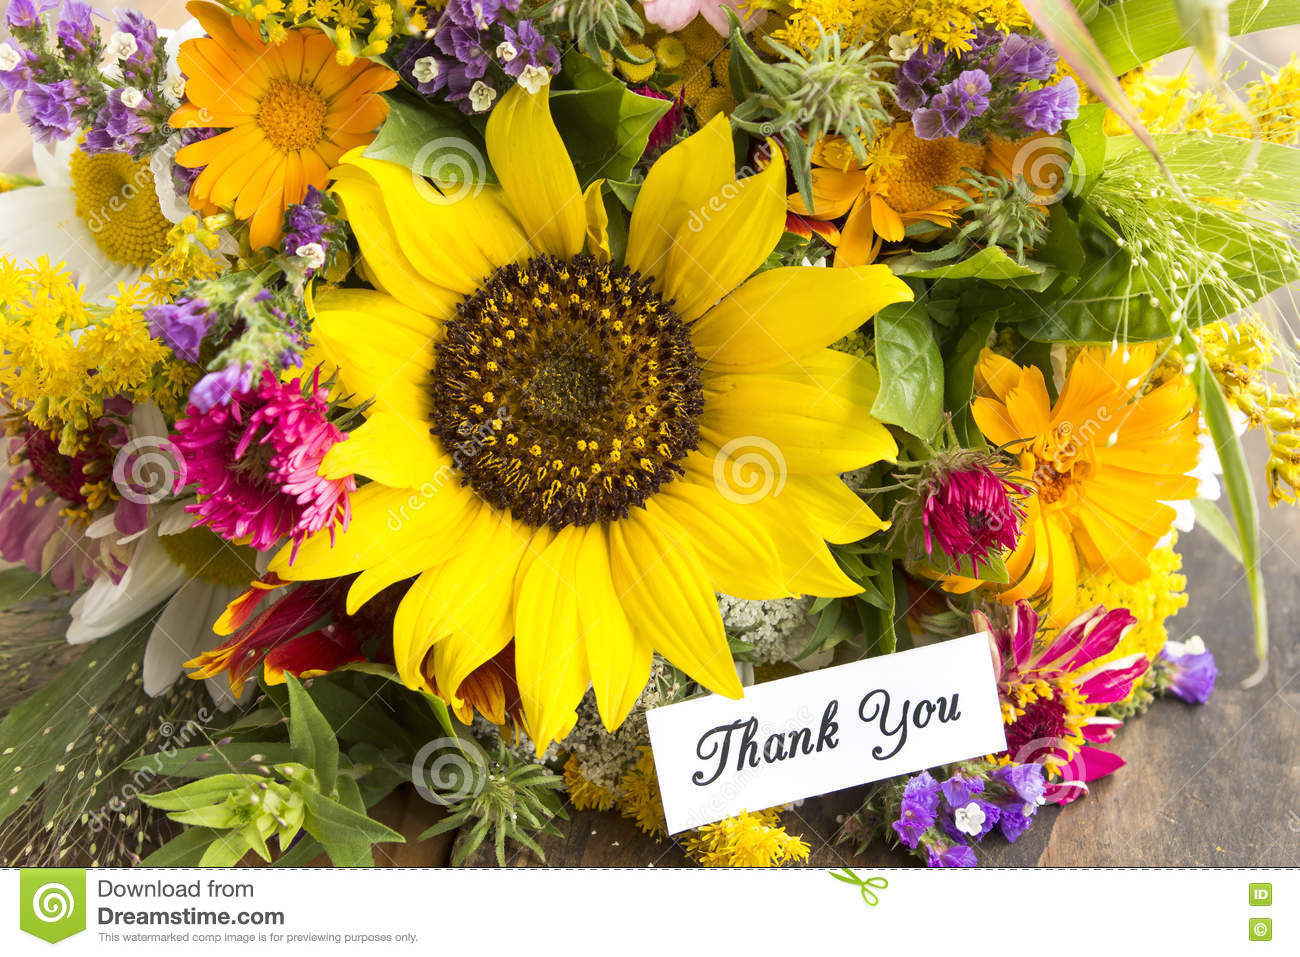 Thank you flowers stock photos royalty free stock images thank you card with bouquet of summer flowers royalty free stock images izmirmasajfo